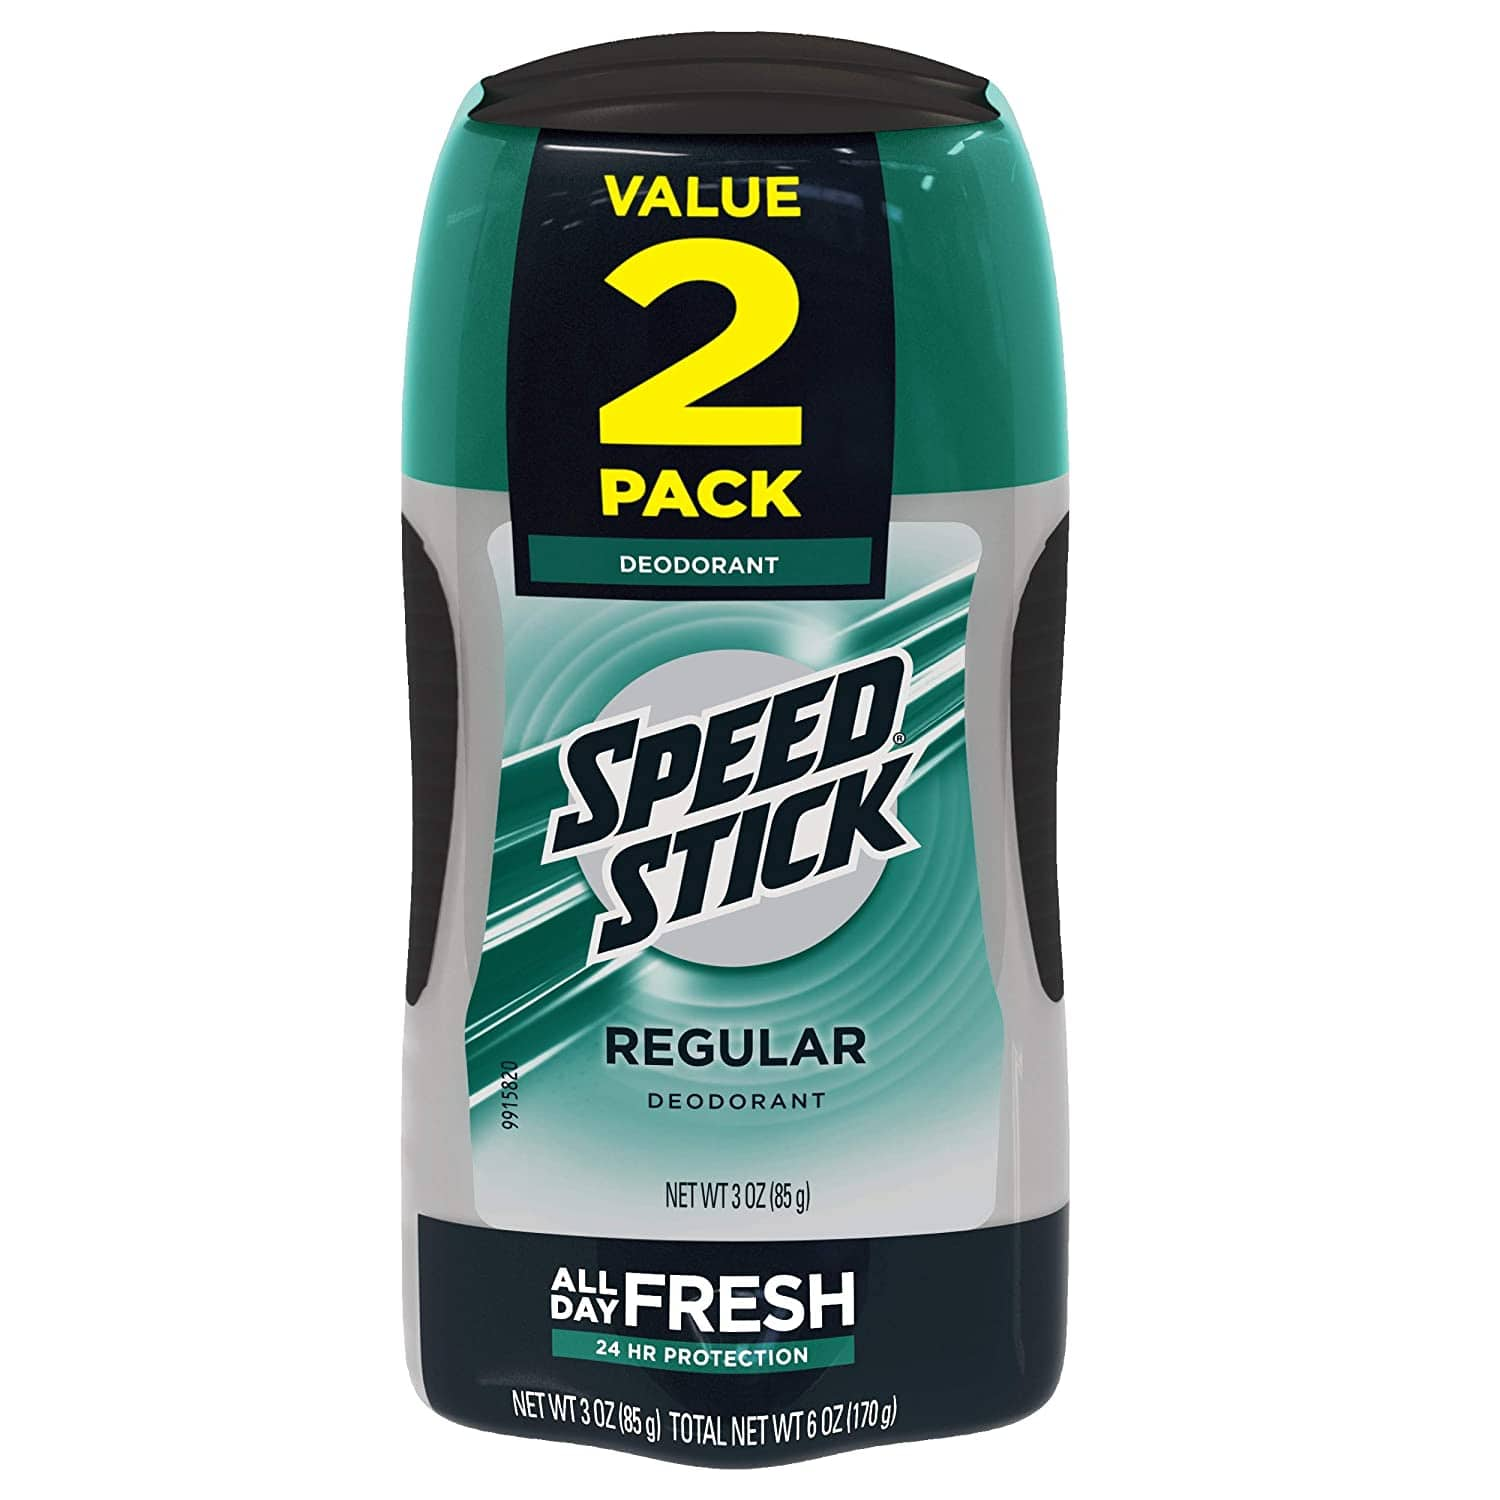 4-Pack 3-Oz Speed Stick Deodorant (Regular) $5.40 w/ S&S + Free S&H w/ Prime